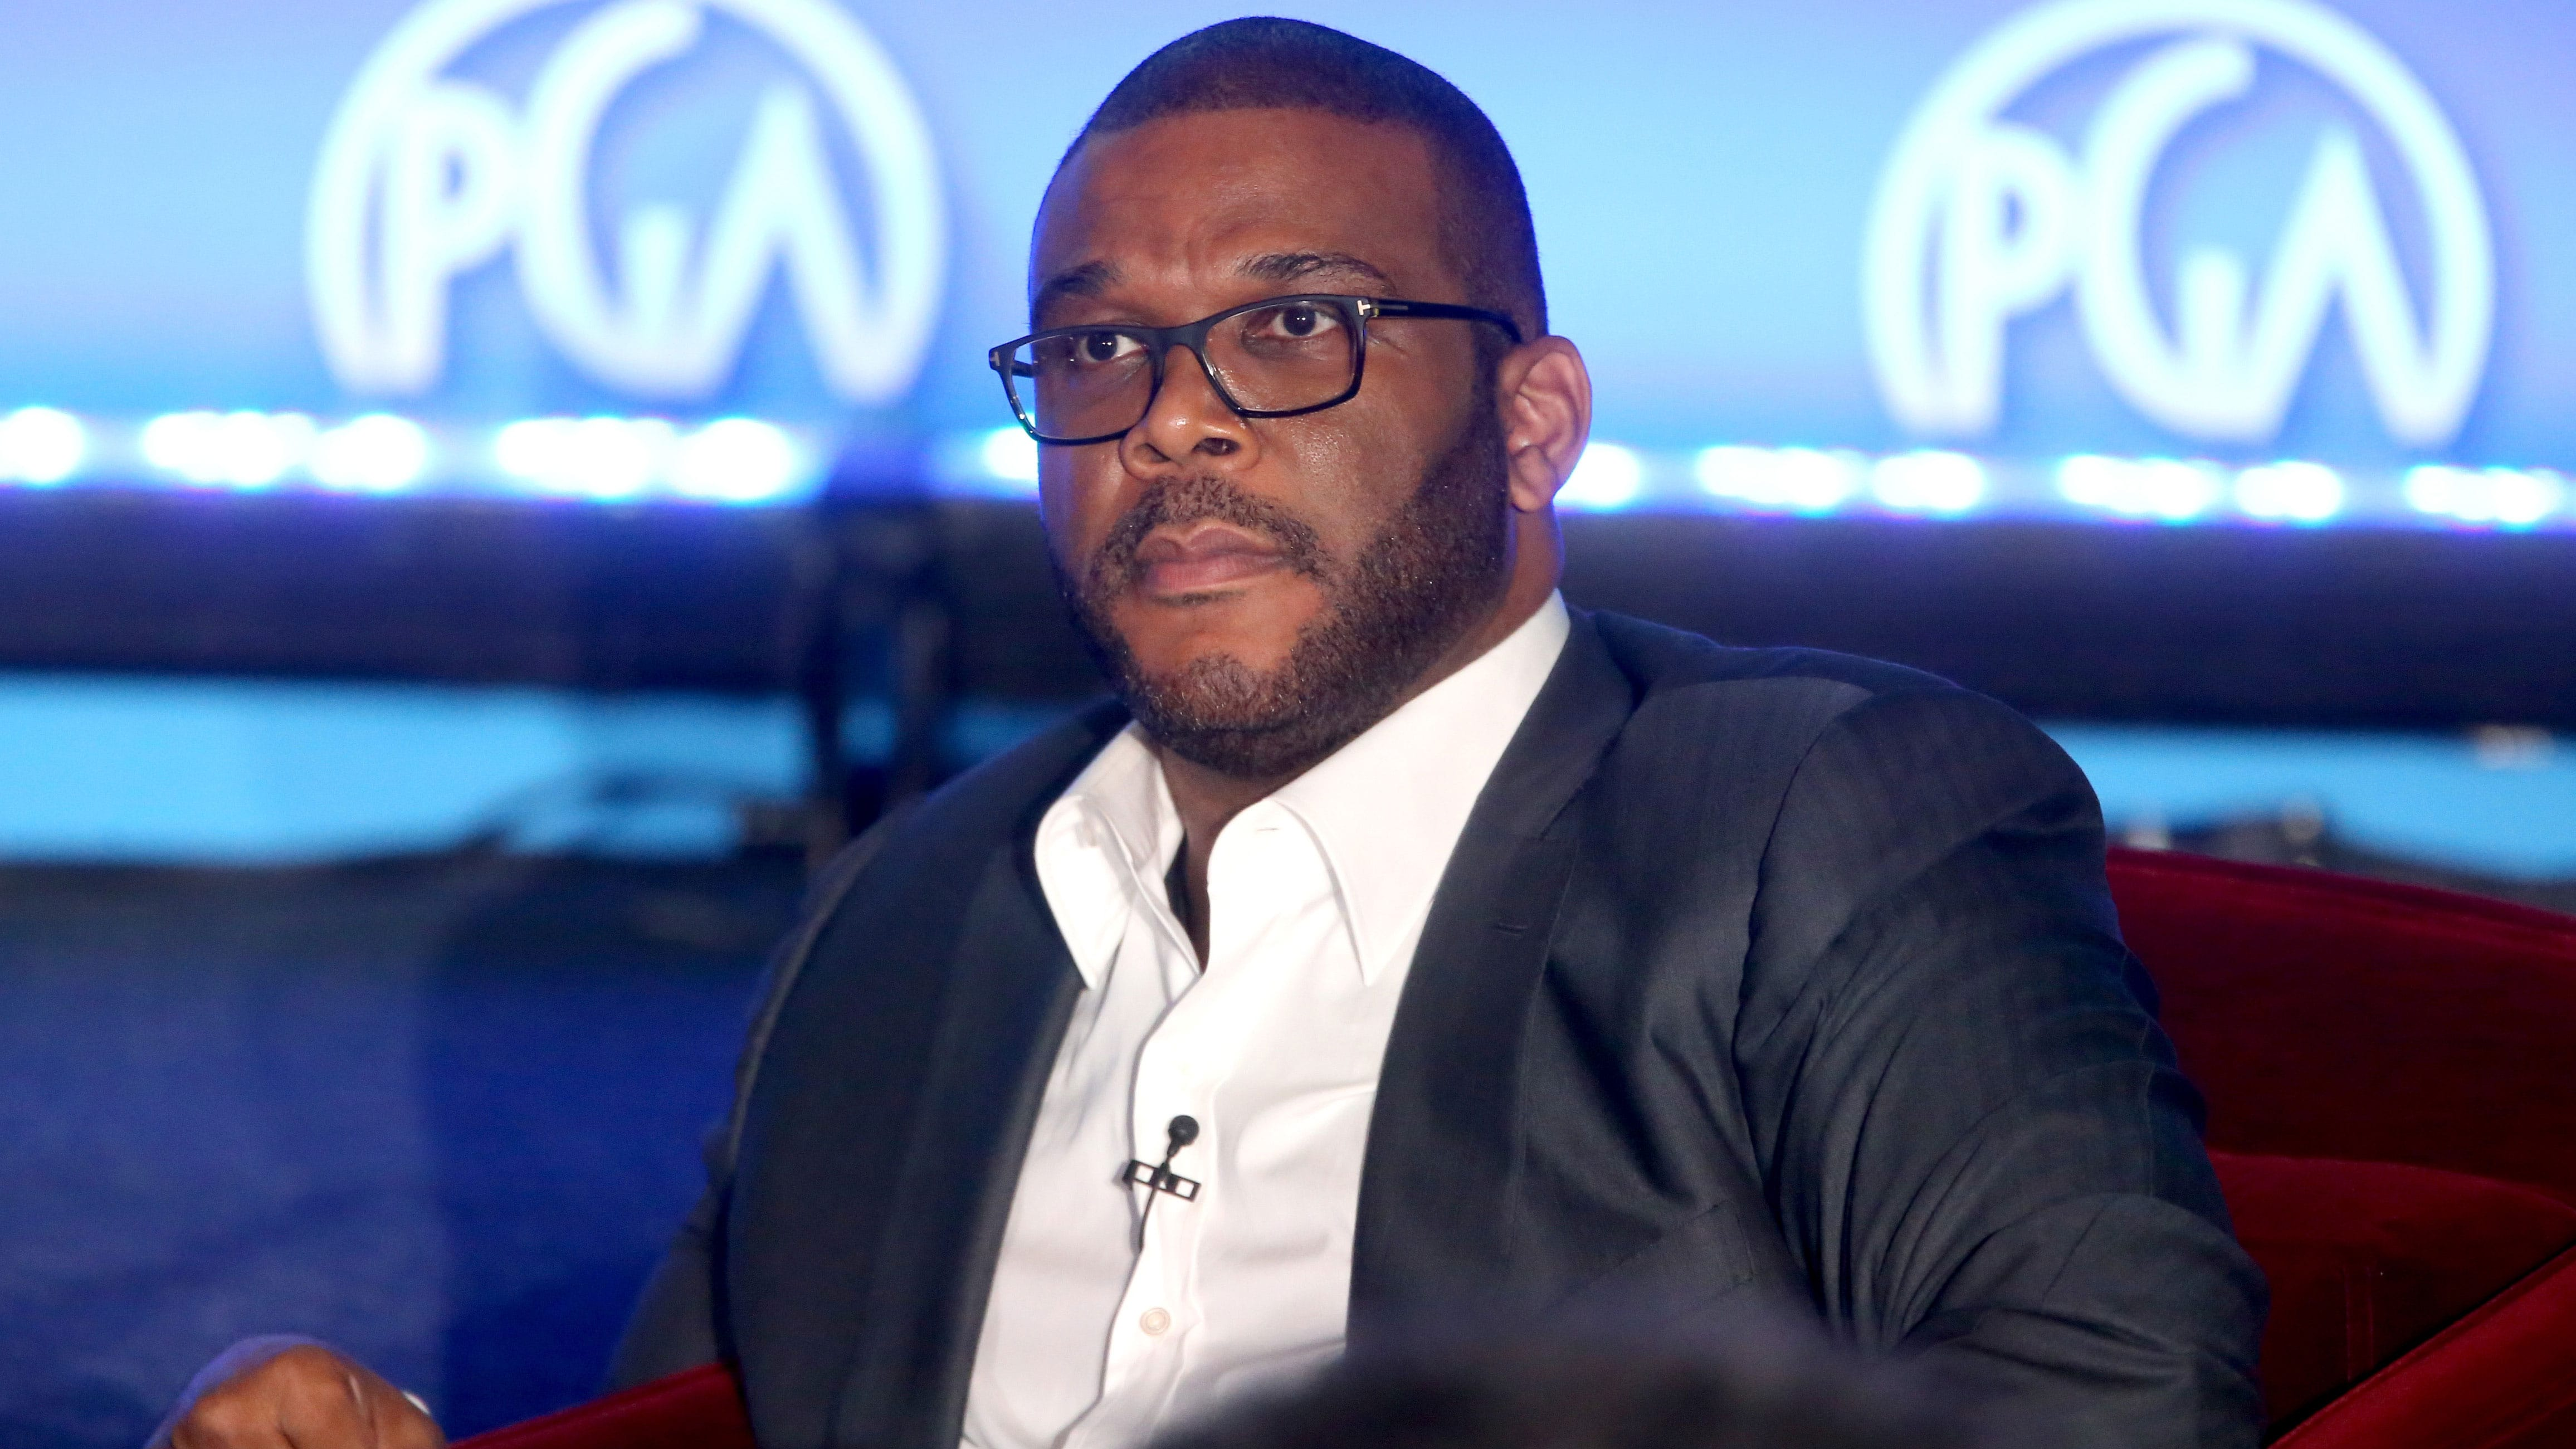 Tyler Perry Full hd wallpapers